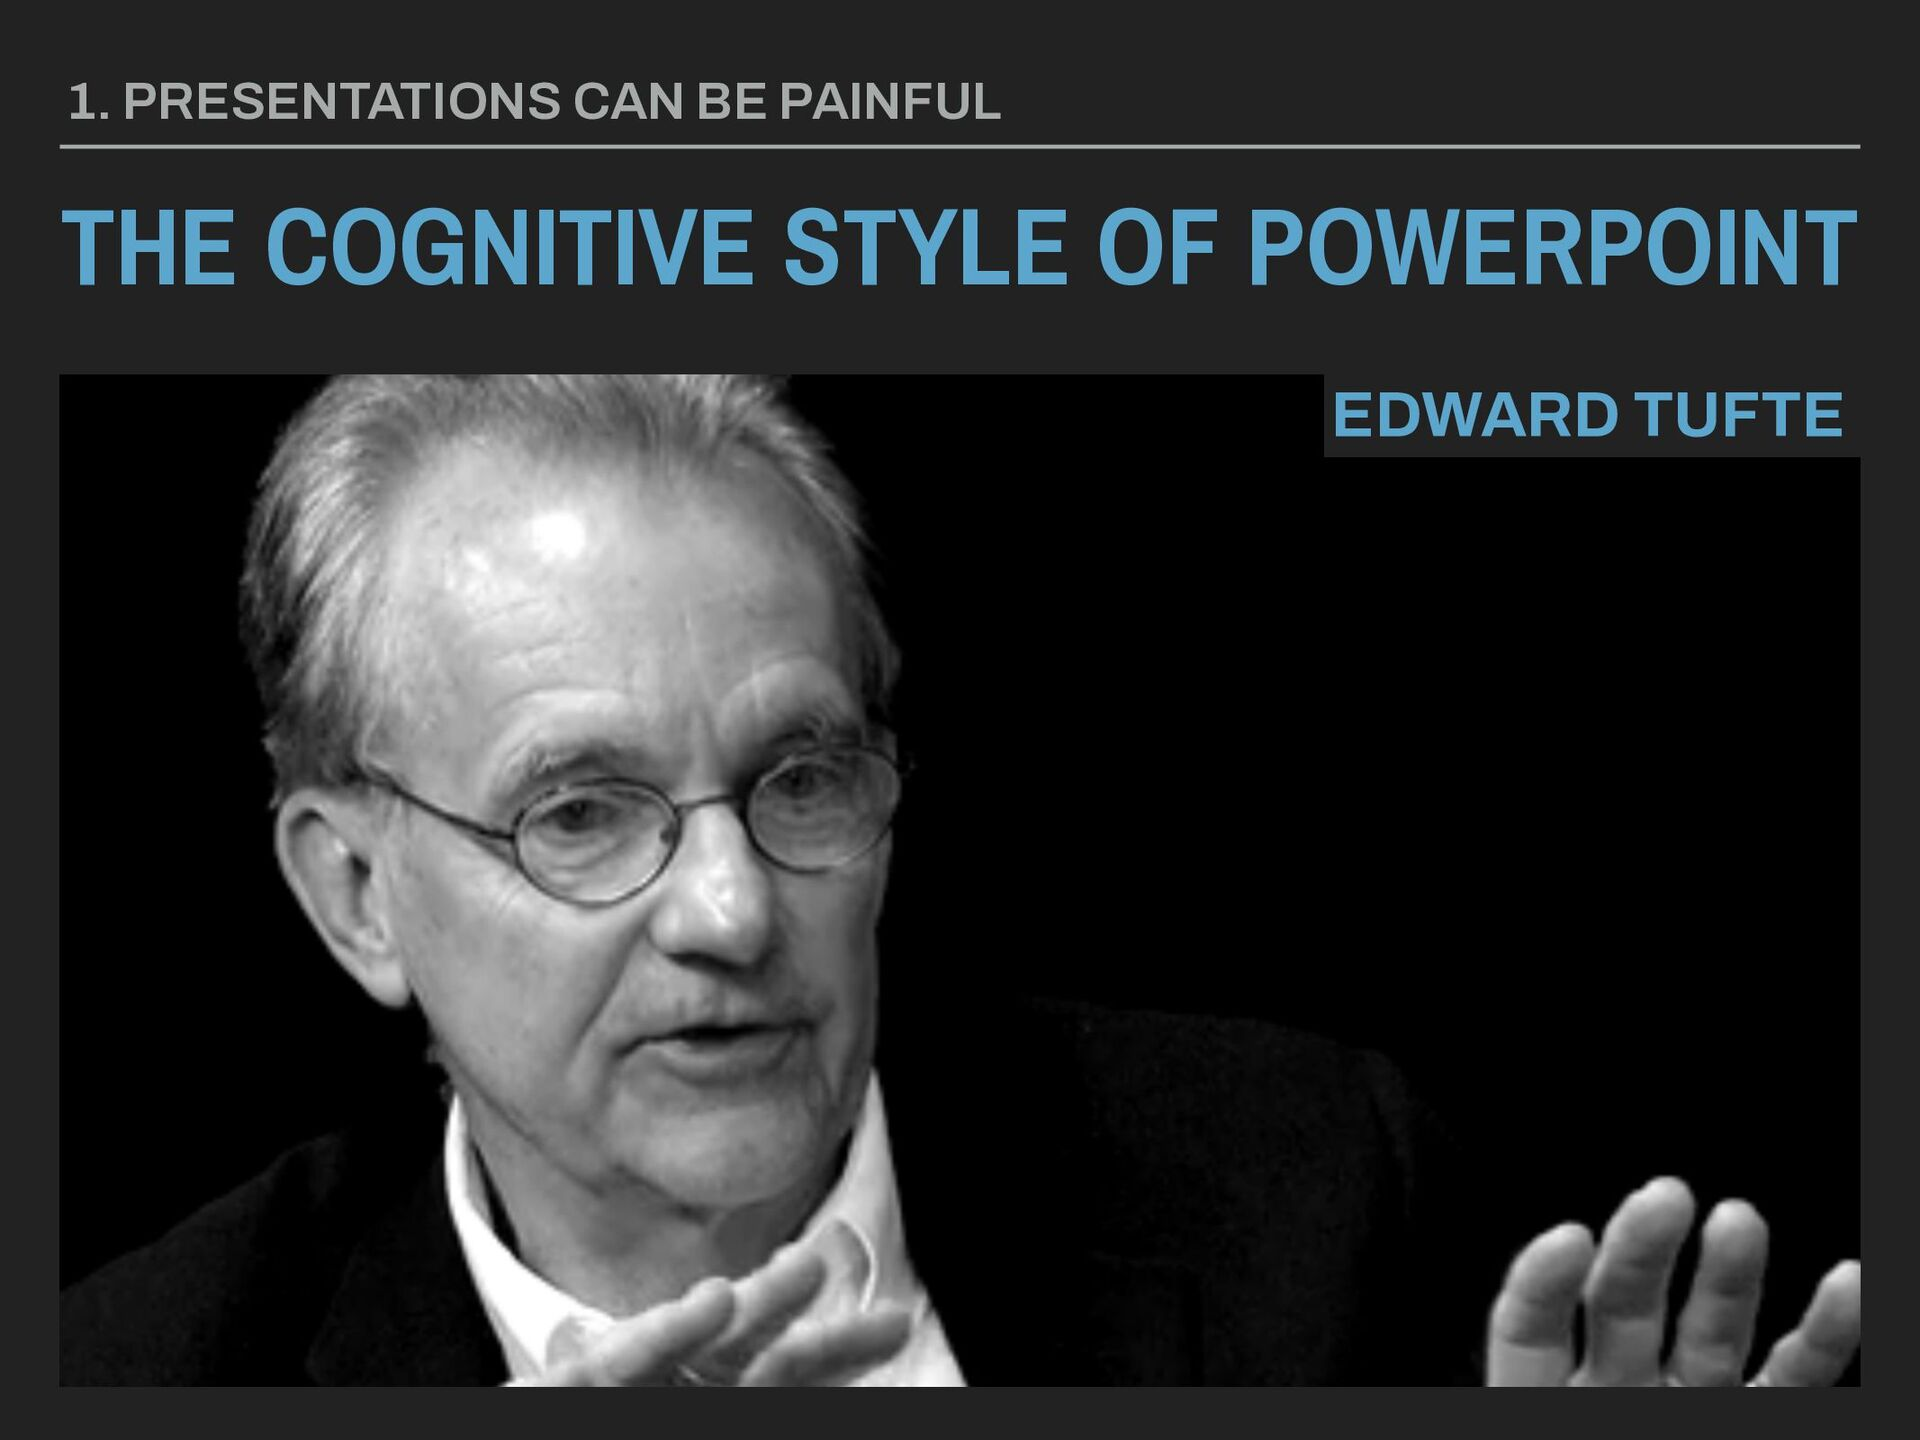 THE COGNITIVE STYLE OF POWERPOINT 1. PRESENTATI...